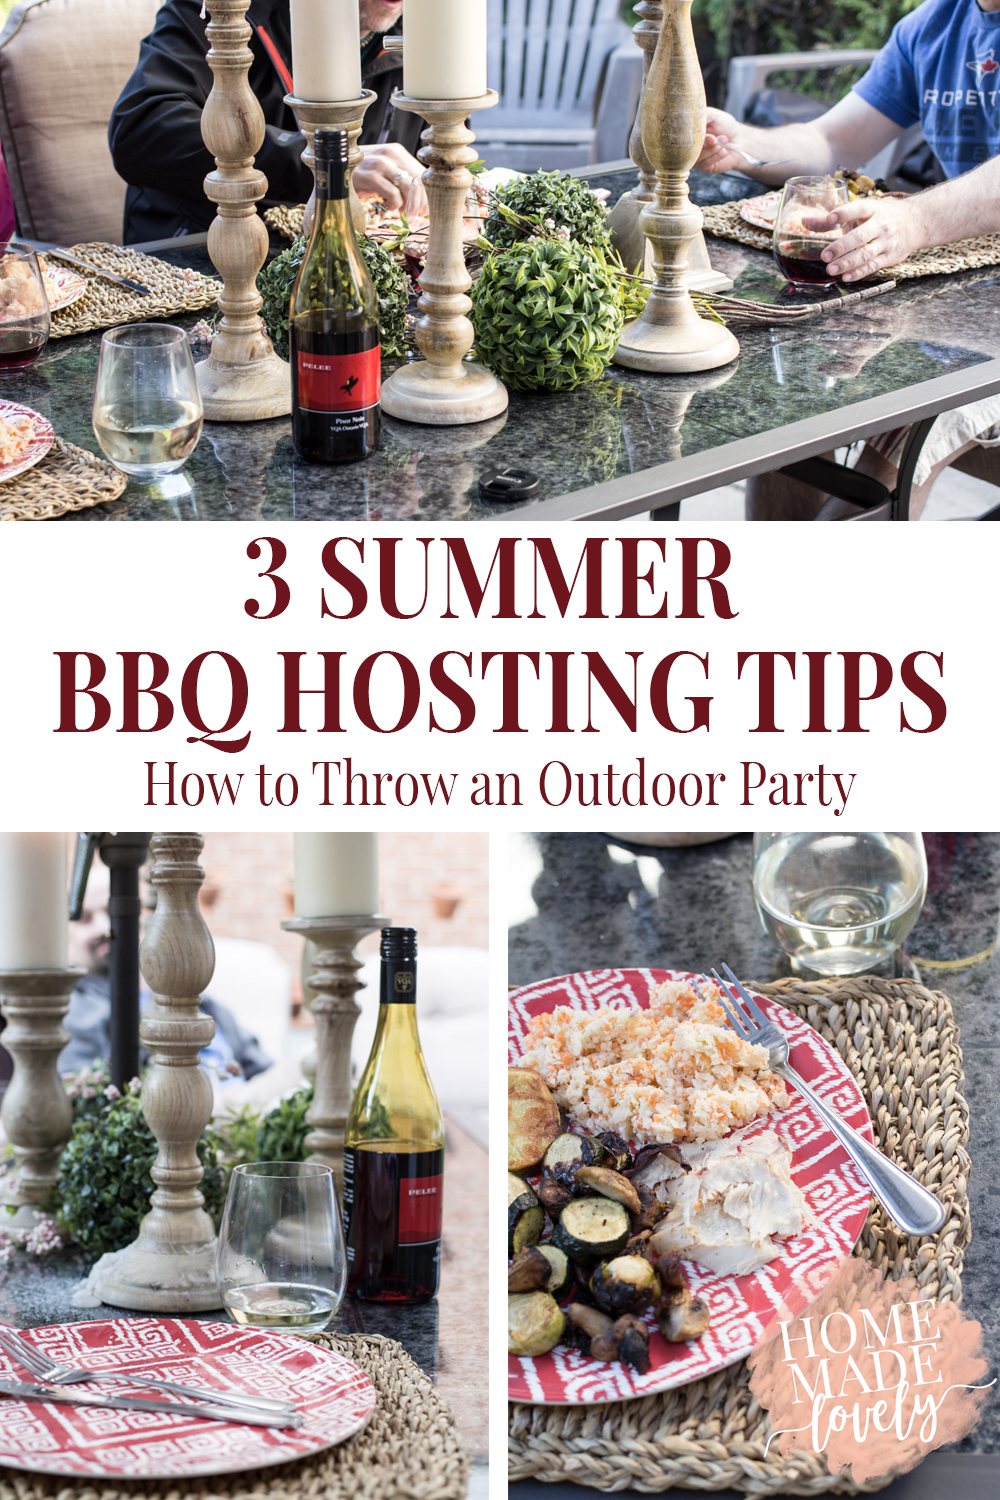 Summer is BBQ season and with that here are 3 Summer BBQ Hosting Tips and How to Throw an Outdoor Party!